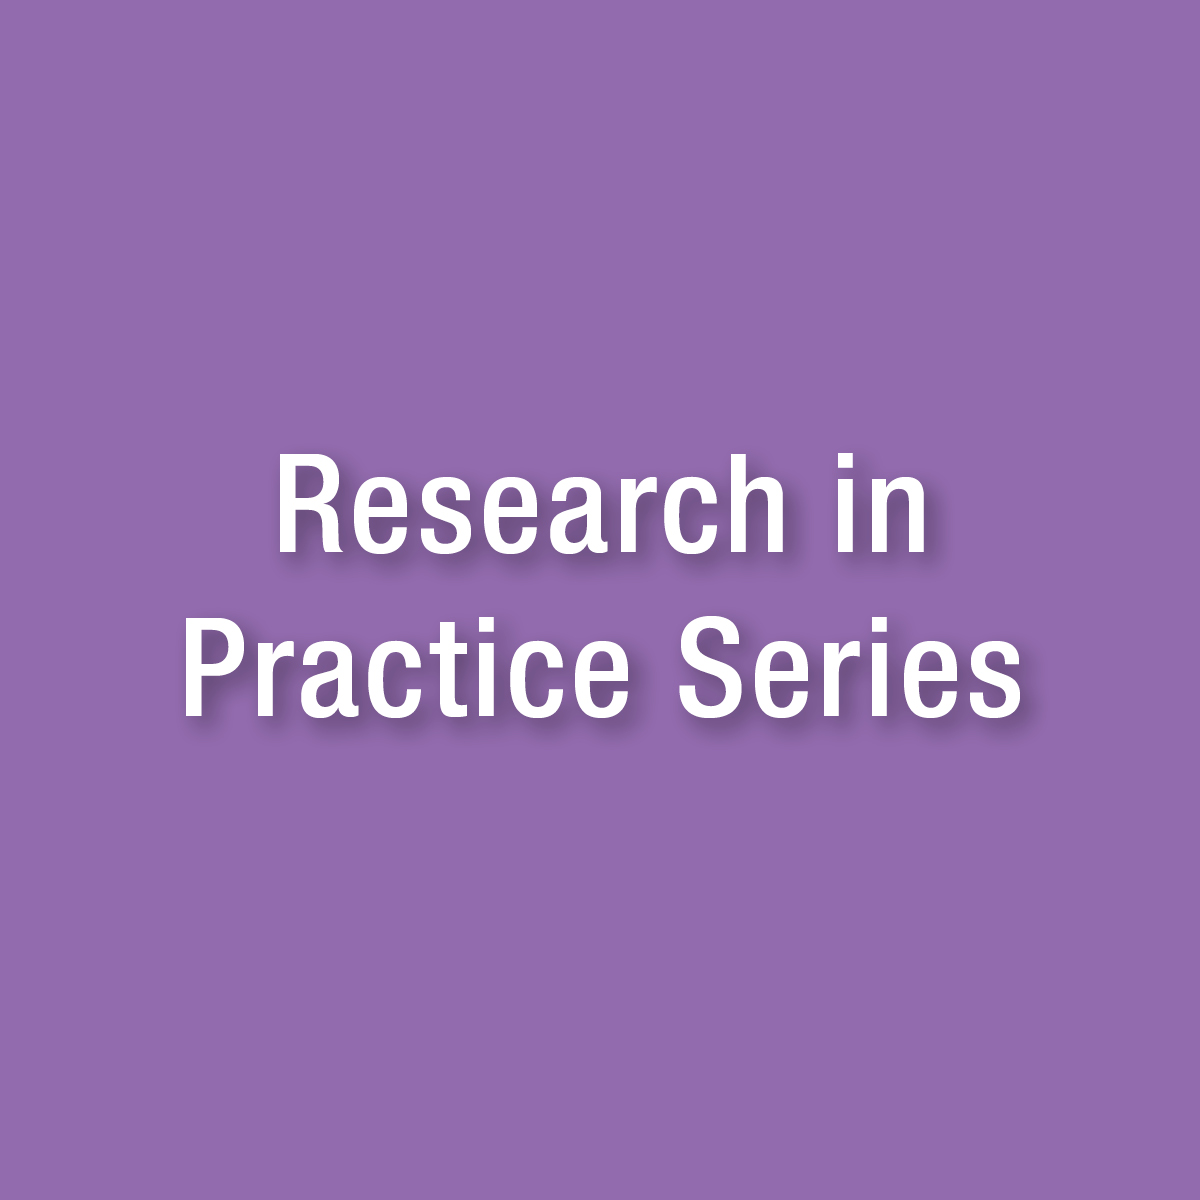 Research in Practice Series